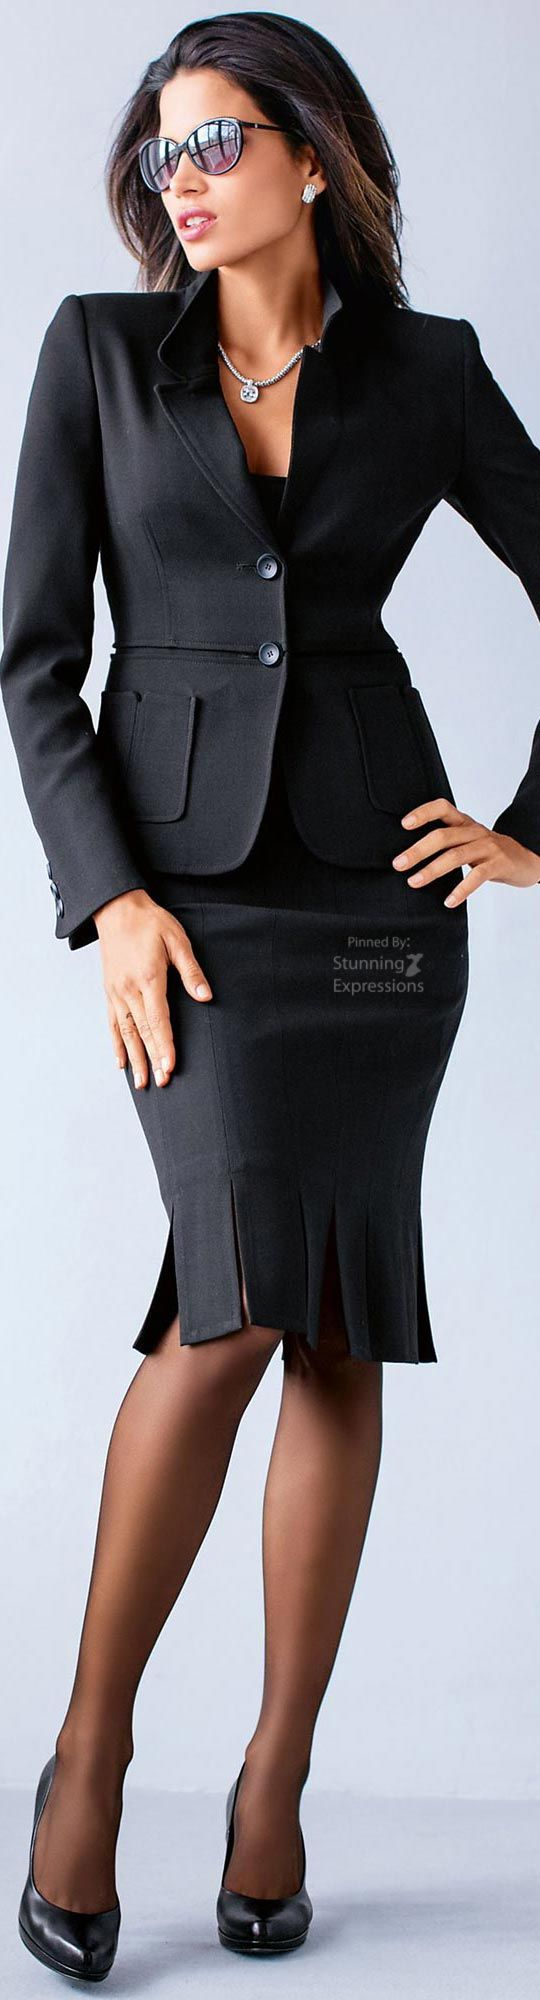 Love the suit